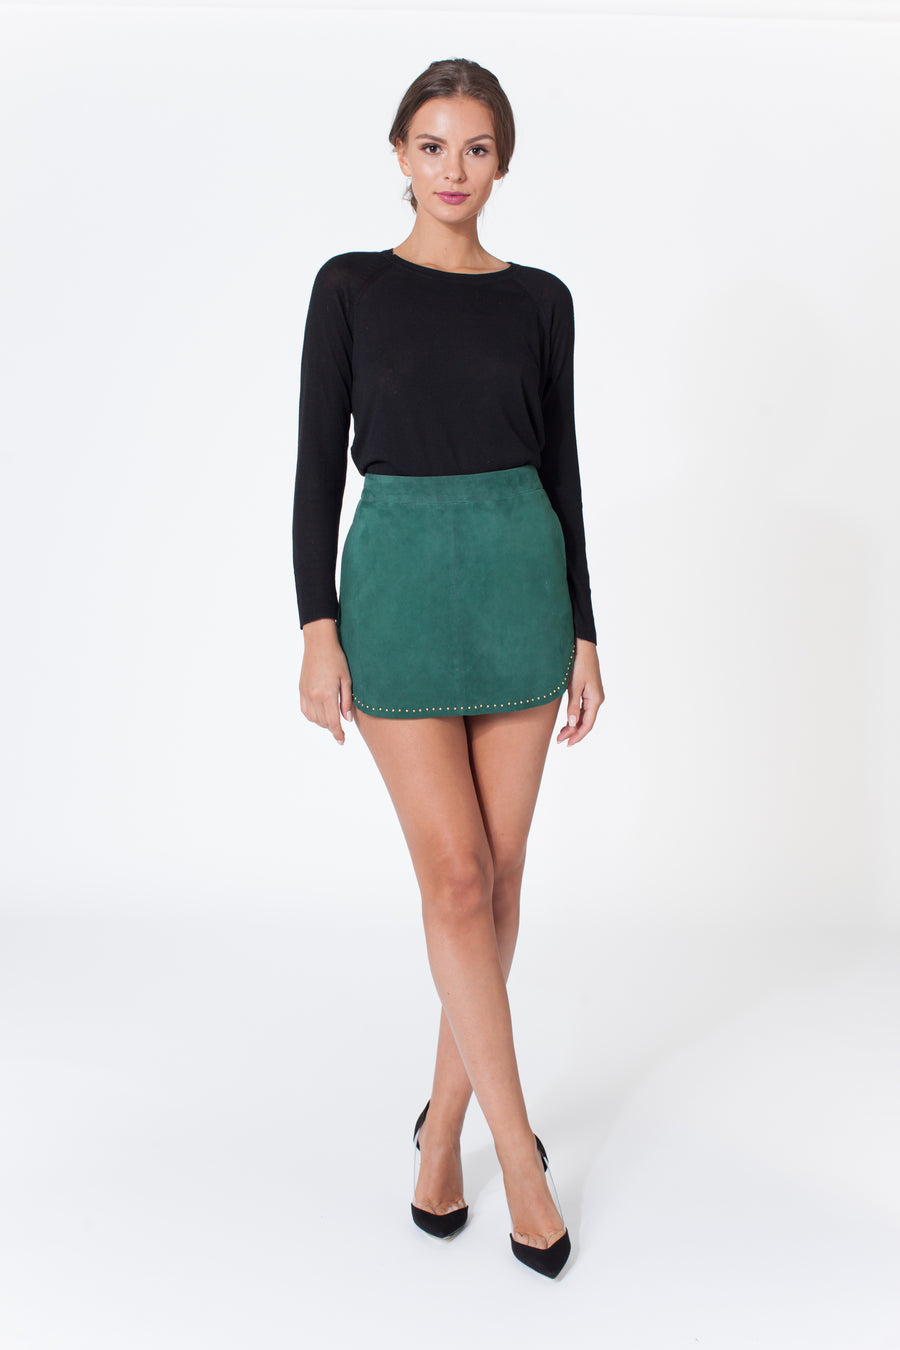 Karina Grimaldi Simon Mini Stud Skirt